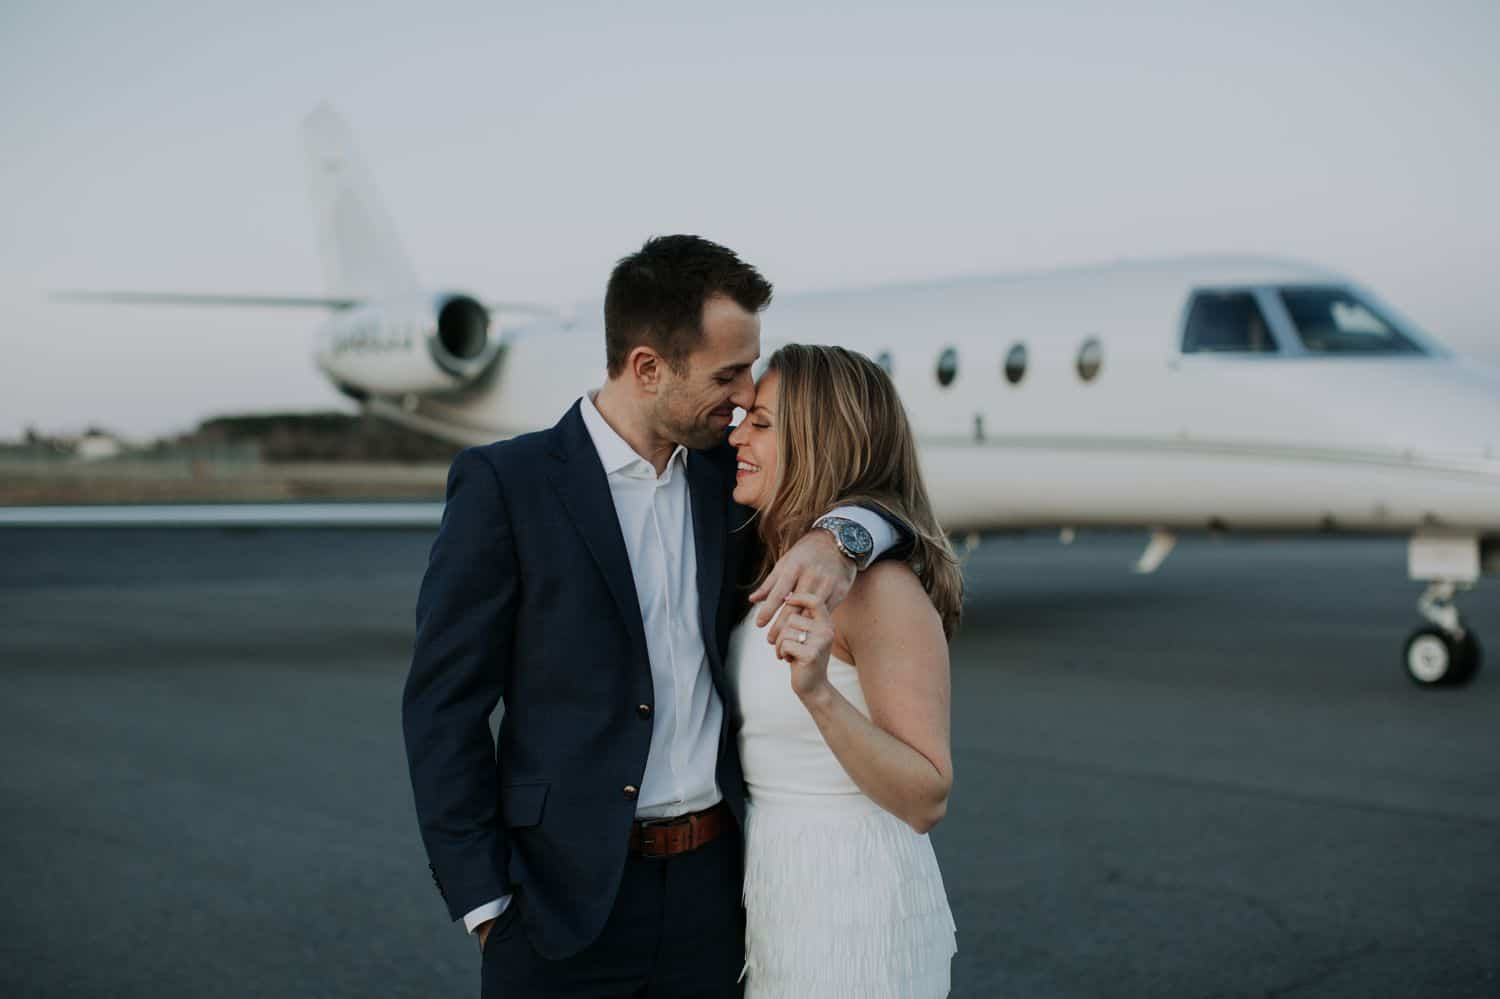 A photo of a couple taken at an airport